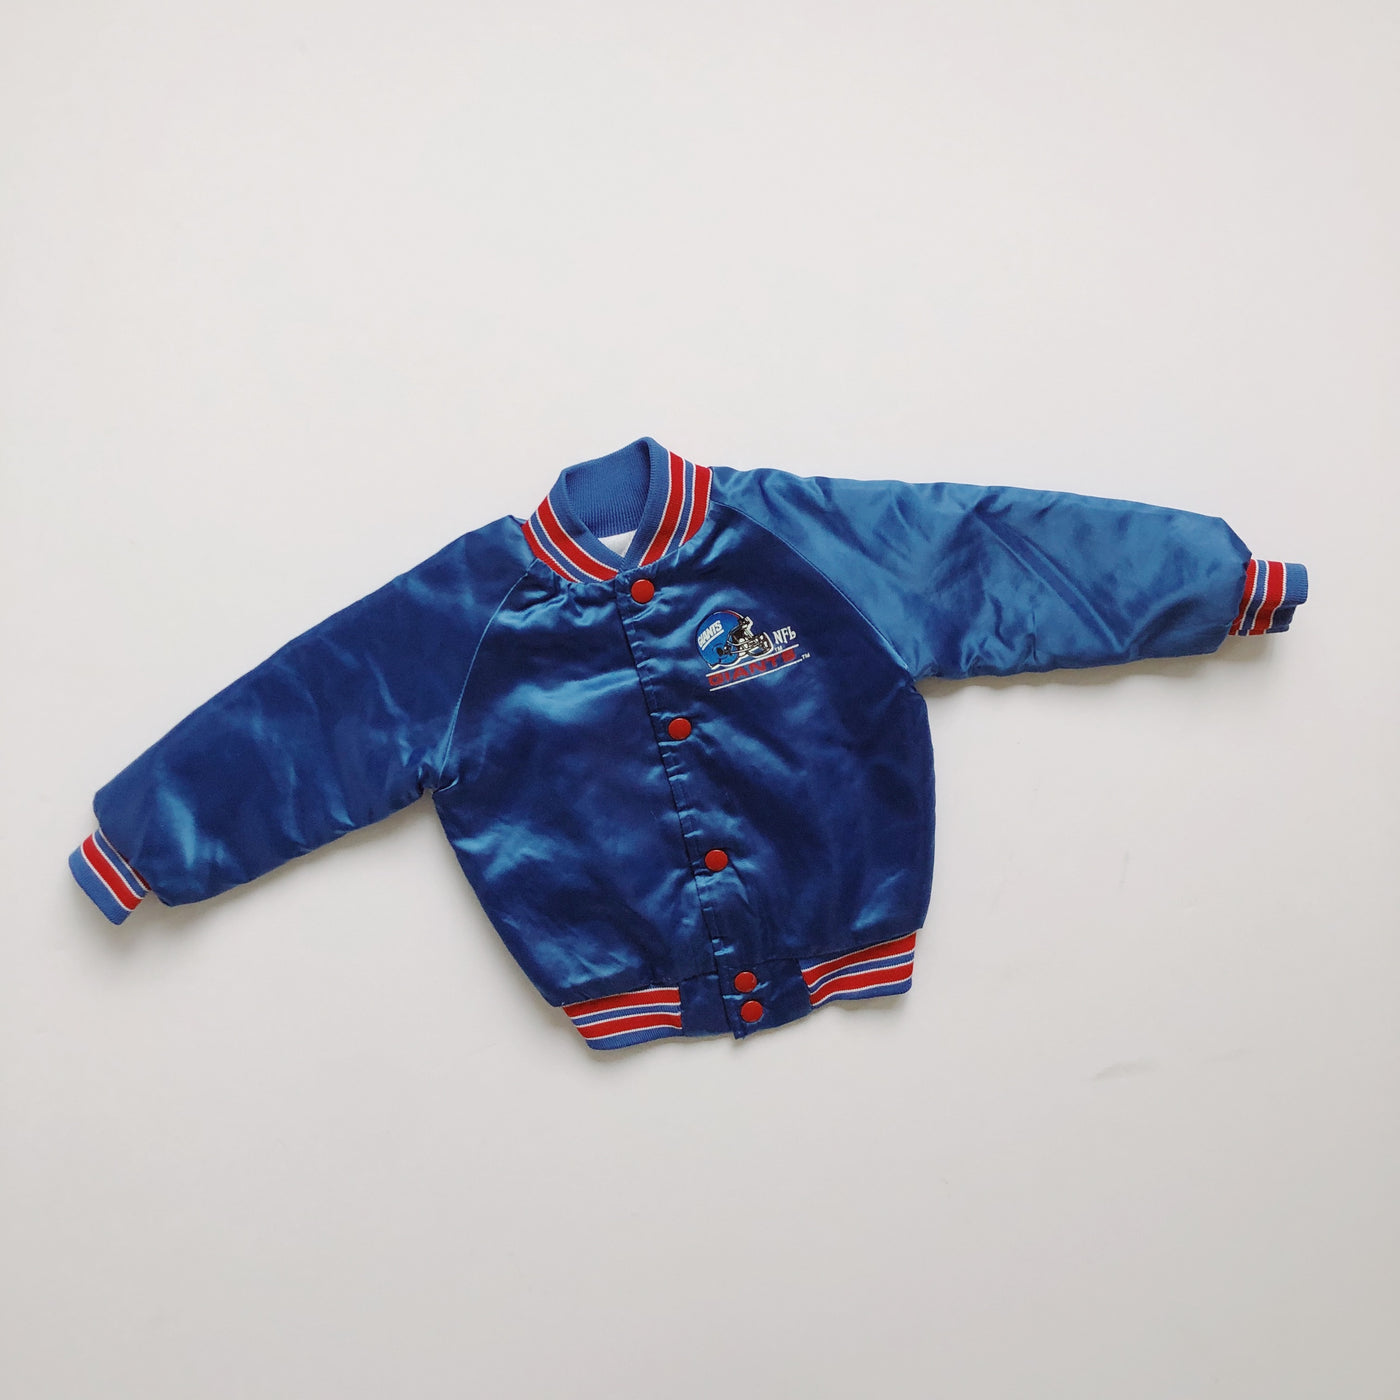 Vintage Locker Line New York Giants Jacket / Size 3T